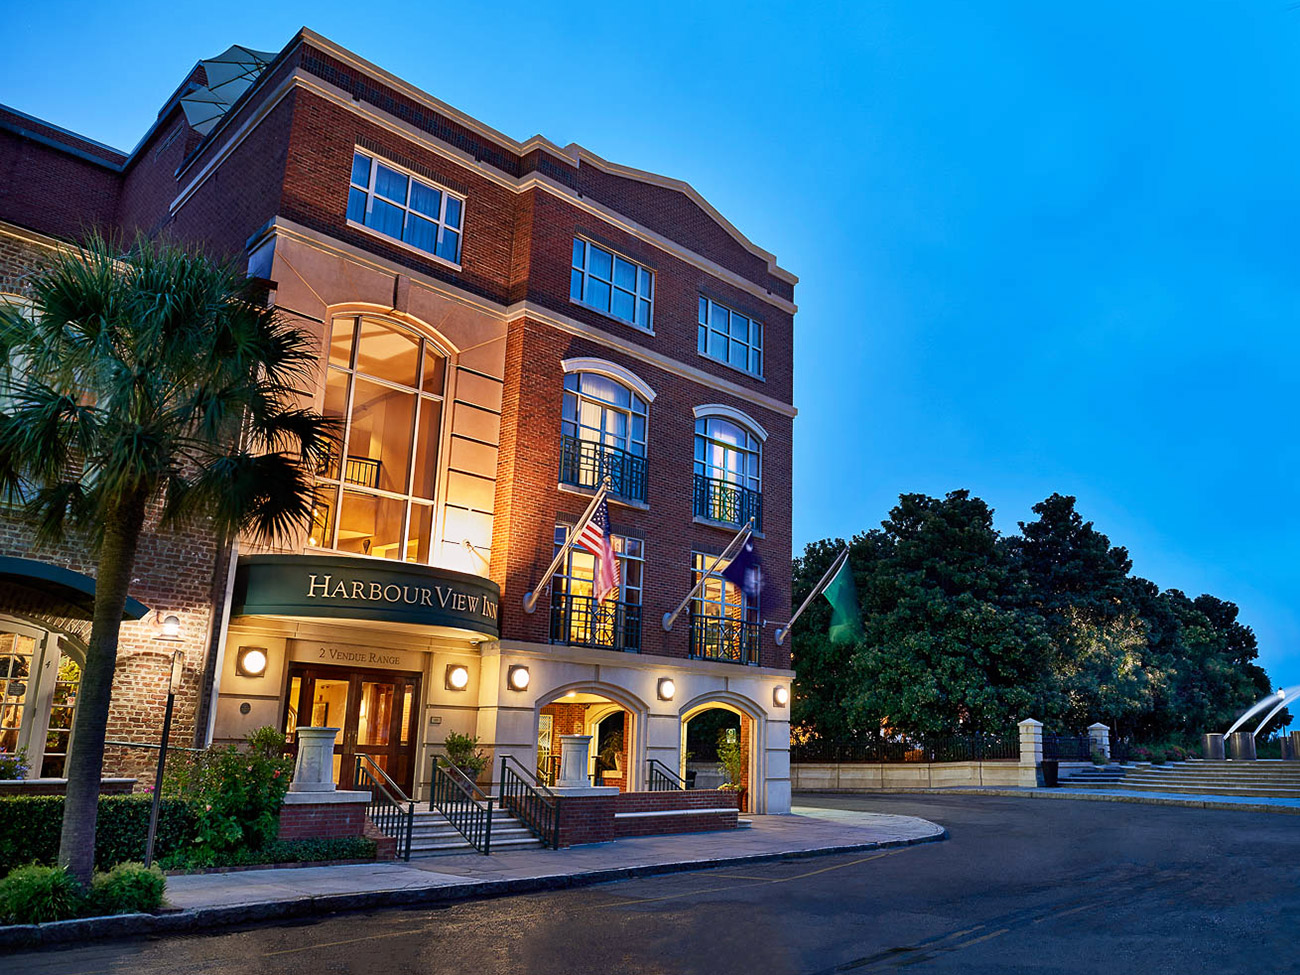 Relive 'The Notebook' With This Hotel's Valentine's Day Package